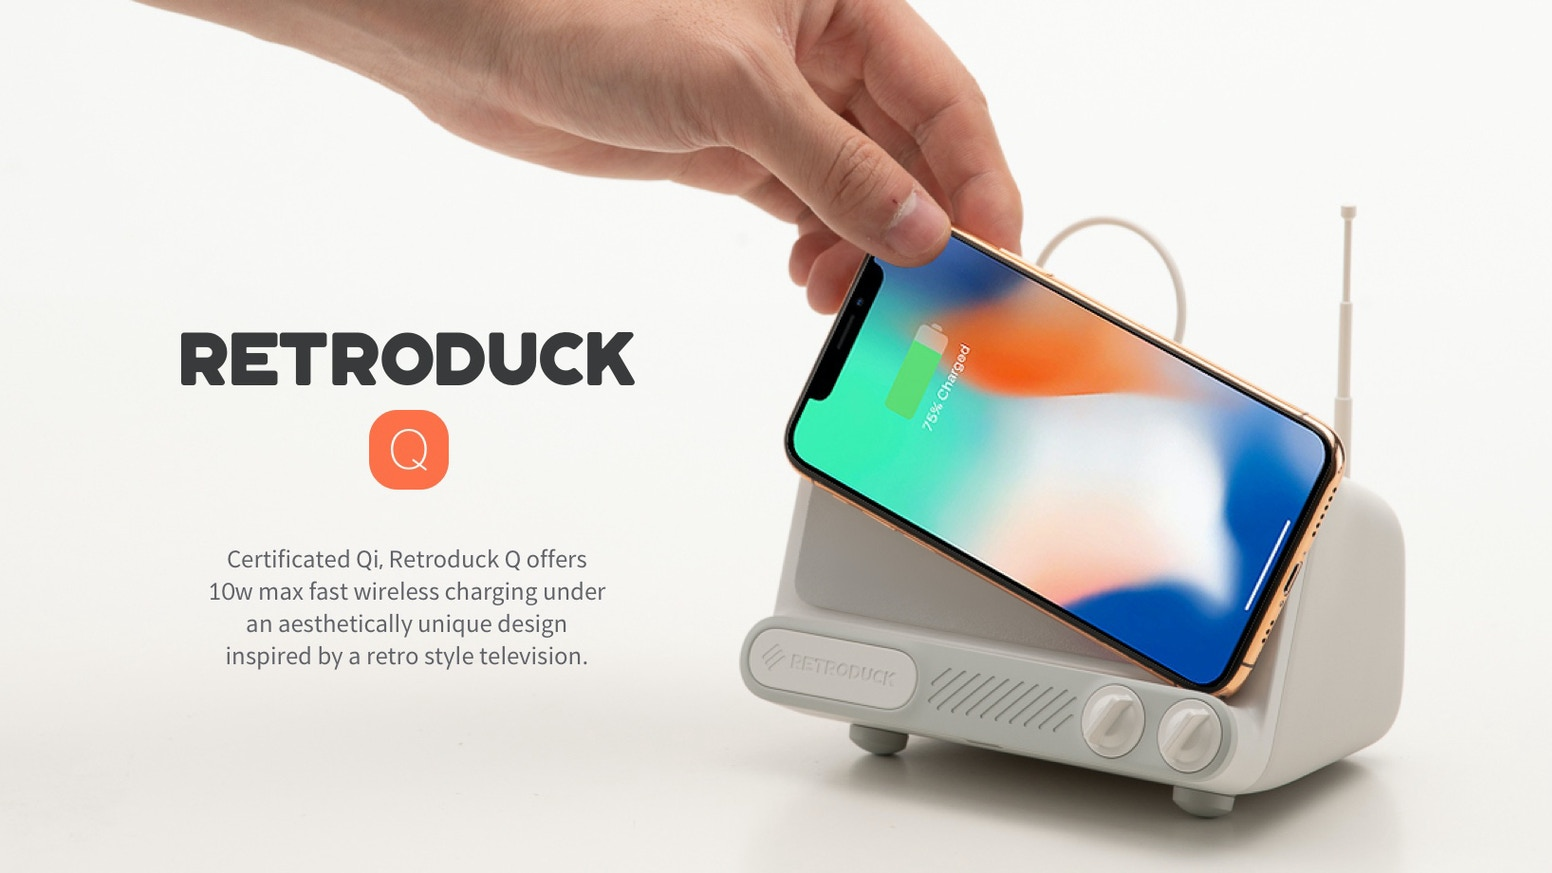 Certificated Qi, Retroduck Q offers fast wireless charging under an aesthetically unique design inspired by a retro style television.